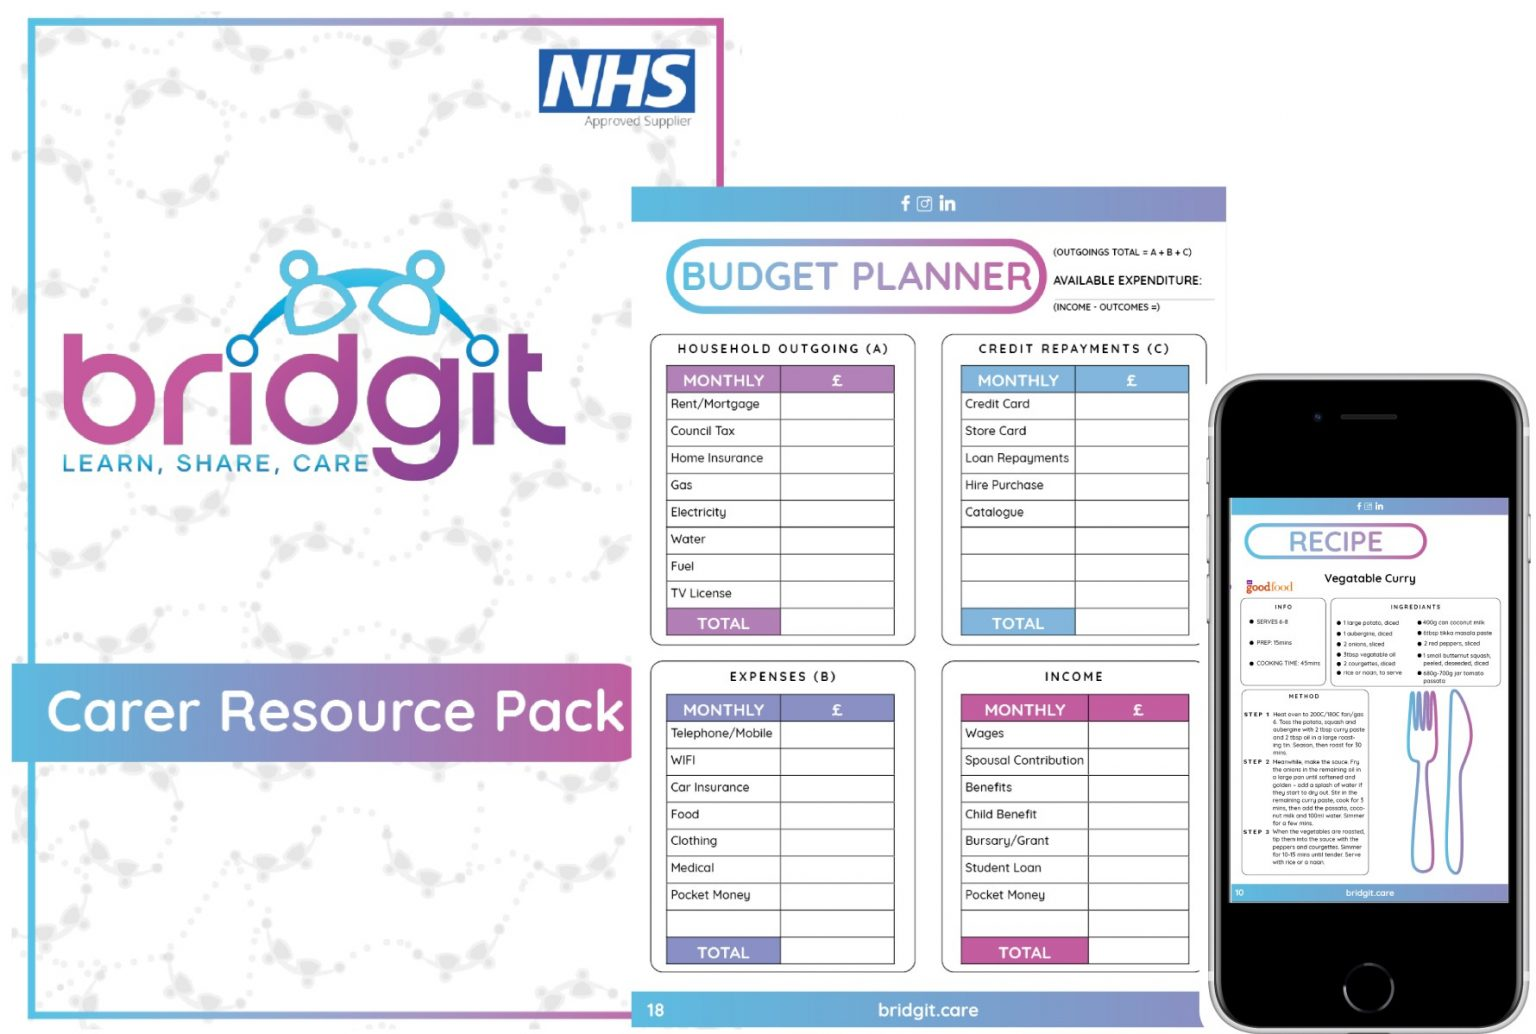 carers pack